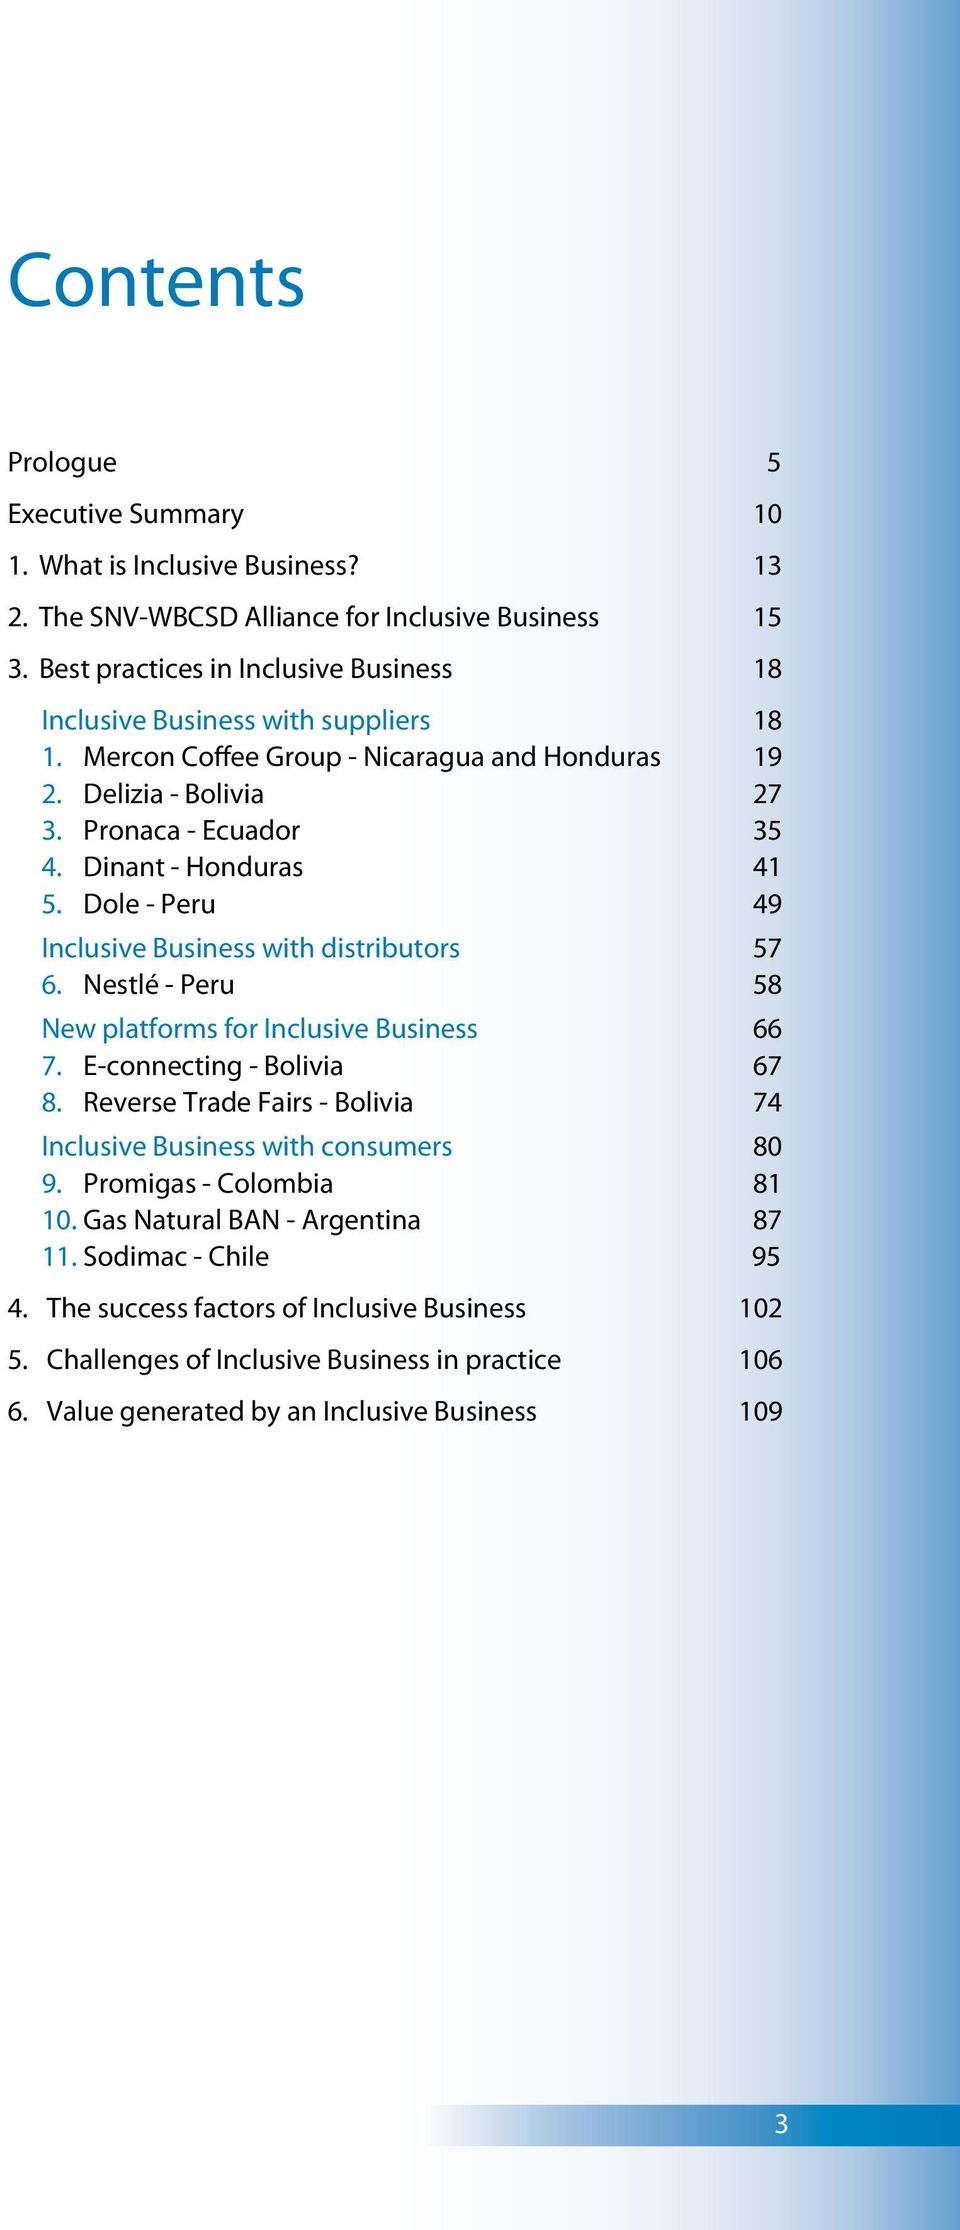 Dinant - Honduras 41 5. Dole - Peru 49 Inclusive Business with distributors 57 6. Nestlé - Peru 58 New platforms for Inclusive Business 66 7. E-connecting - Bolivia 67 8.